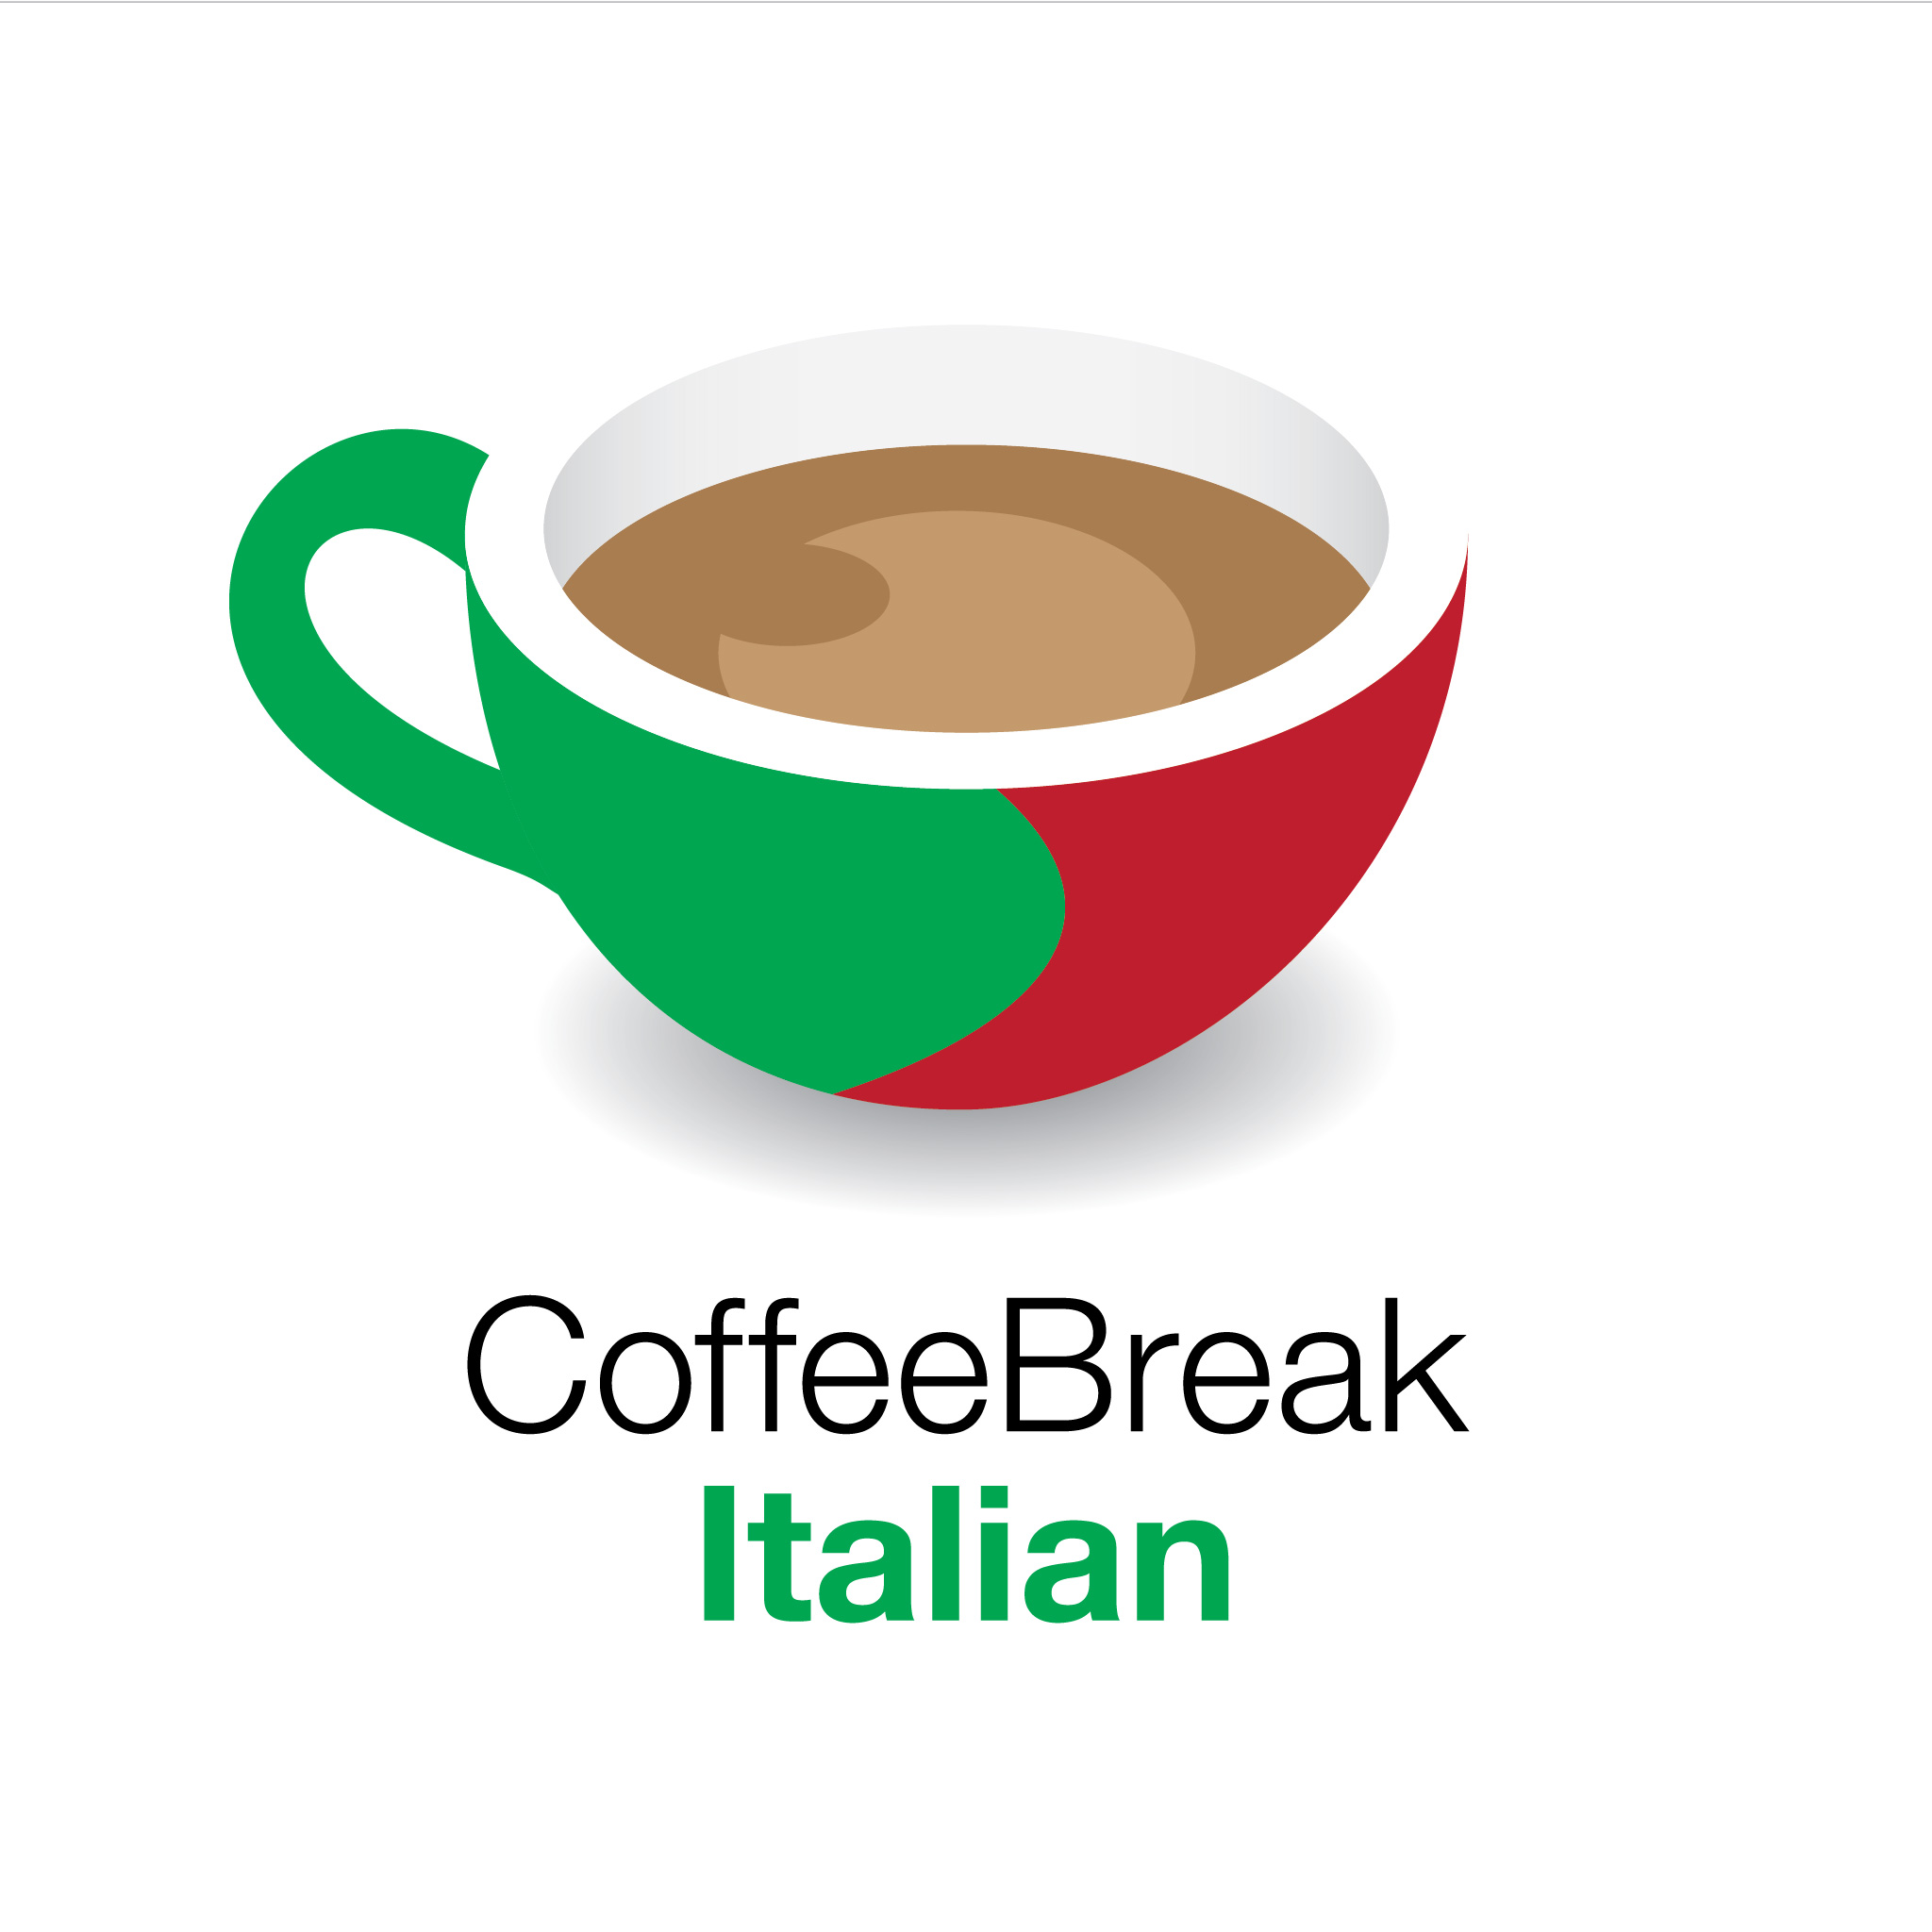 The Coffee Break Italian Team